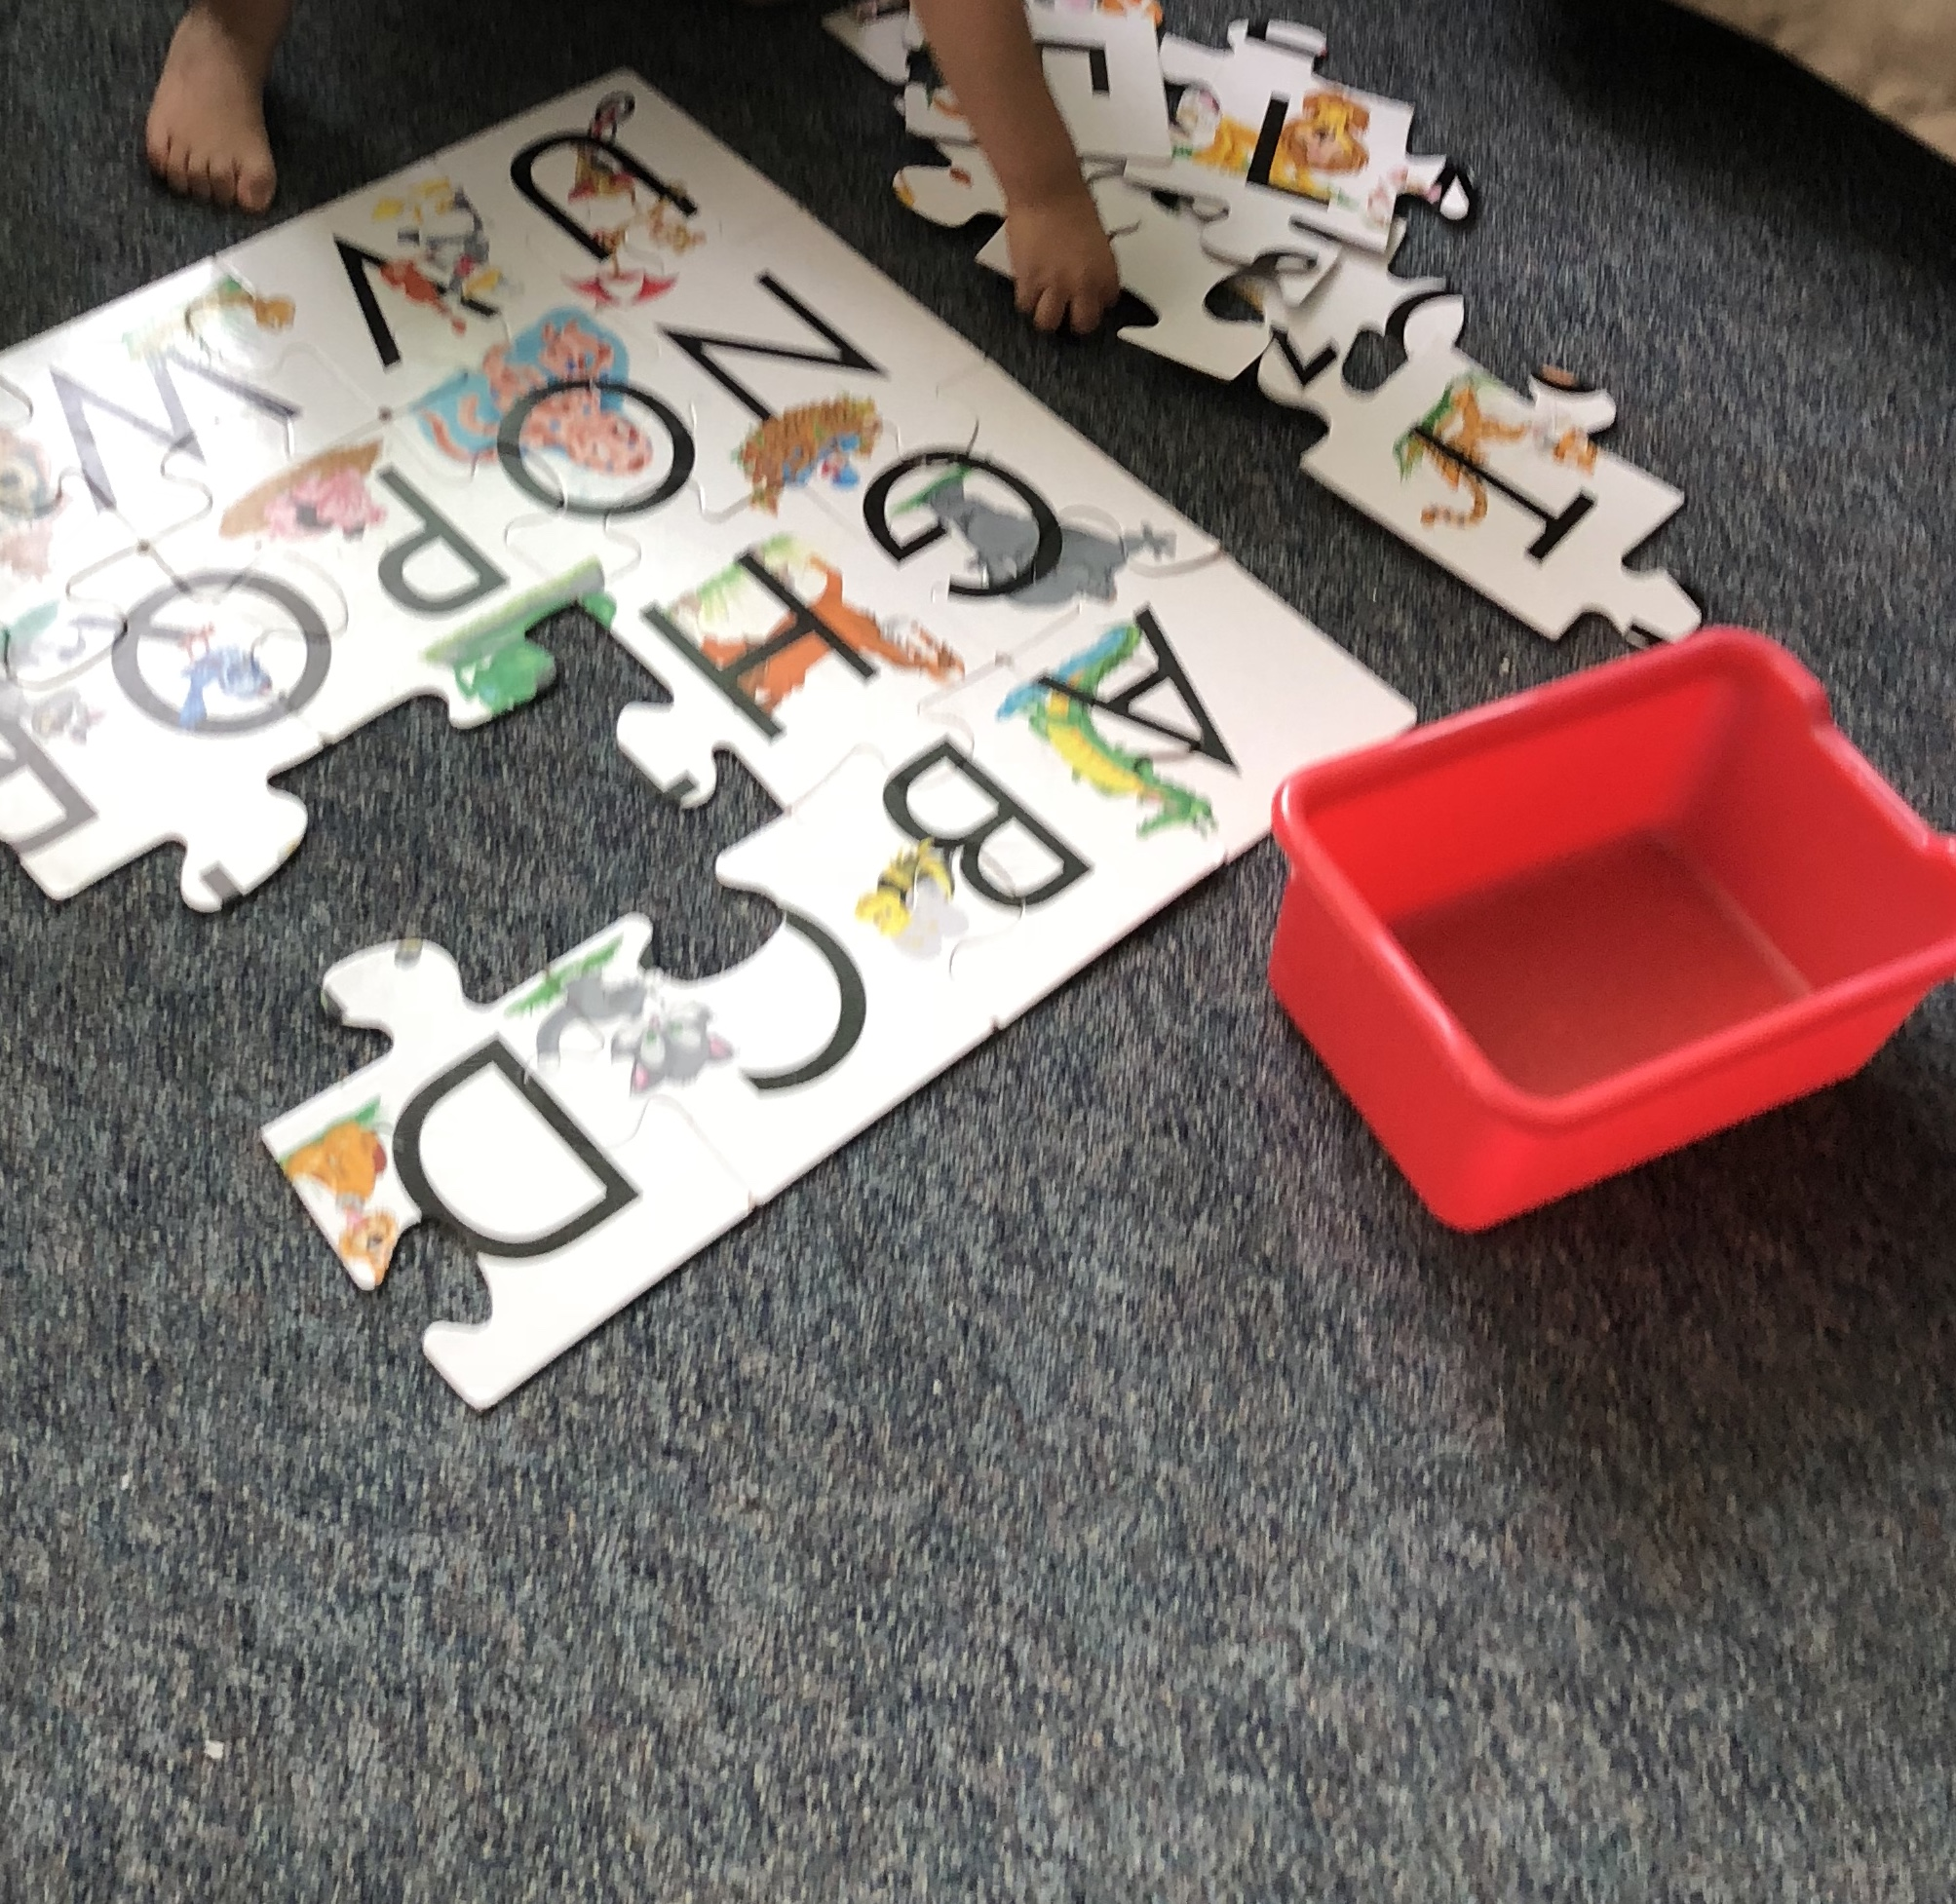 image of an alphabet puzzle on the floor, half completed